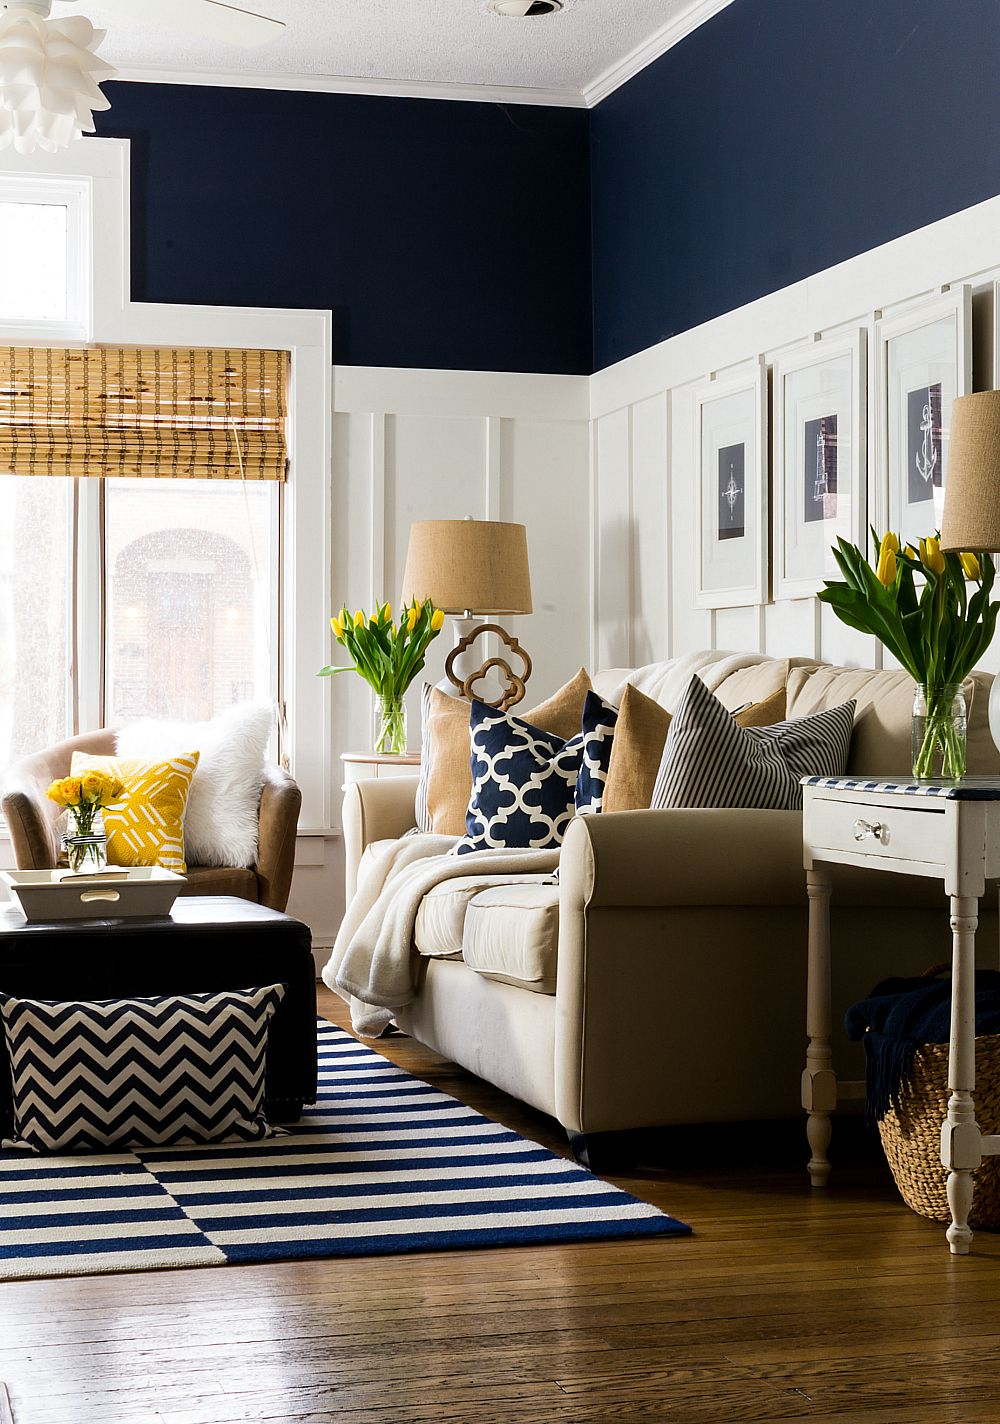 High Quality Naval By Sherwin Williams   The Perfect Navy Blue Paint Color For Every Room  In Your Home